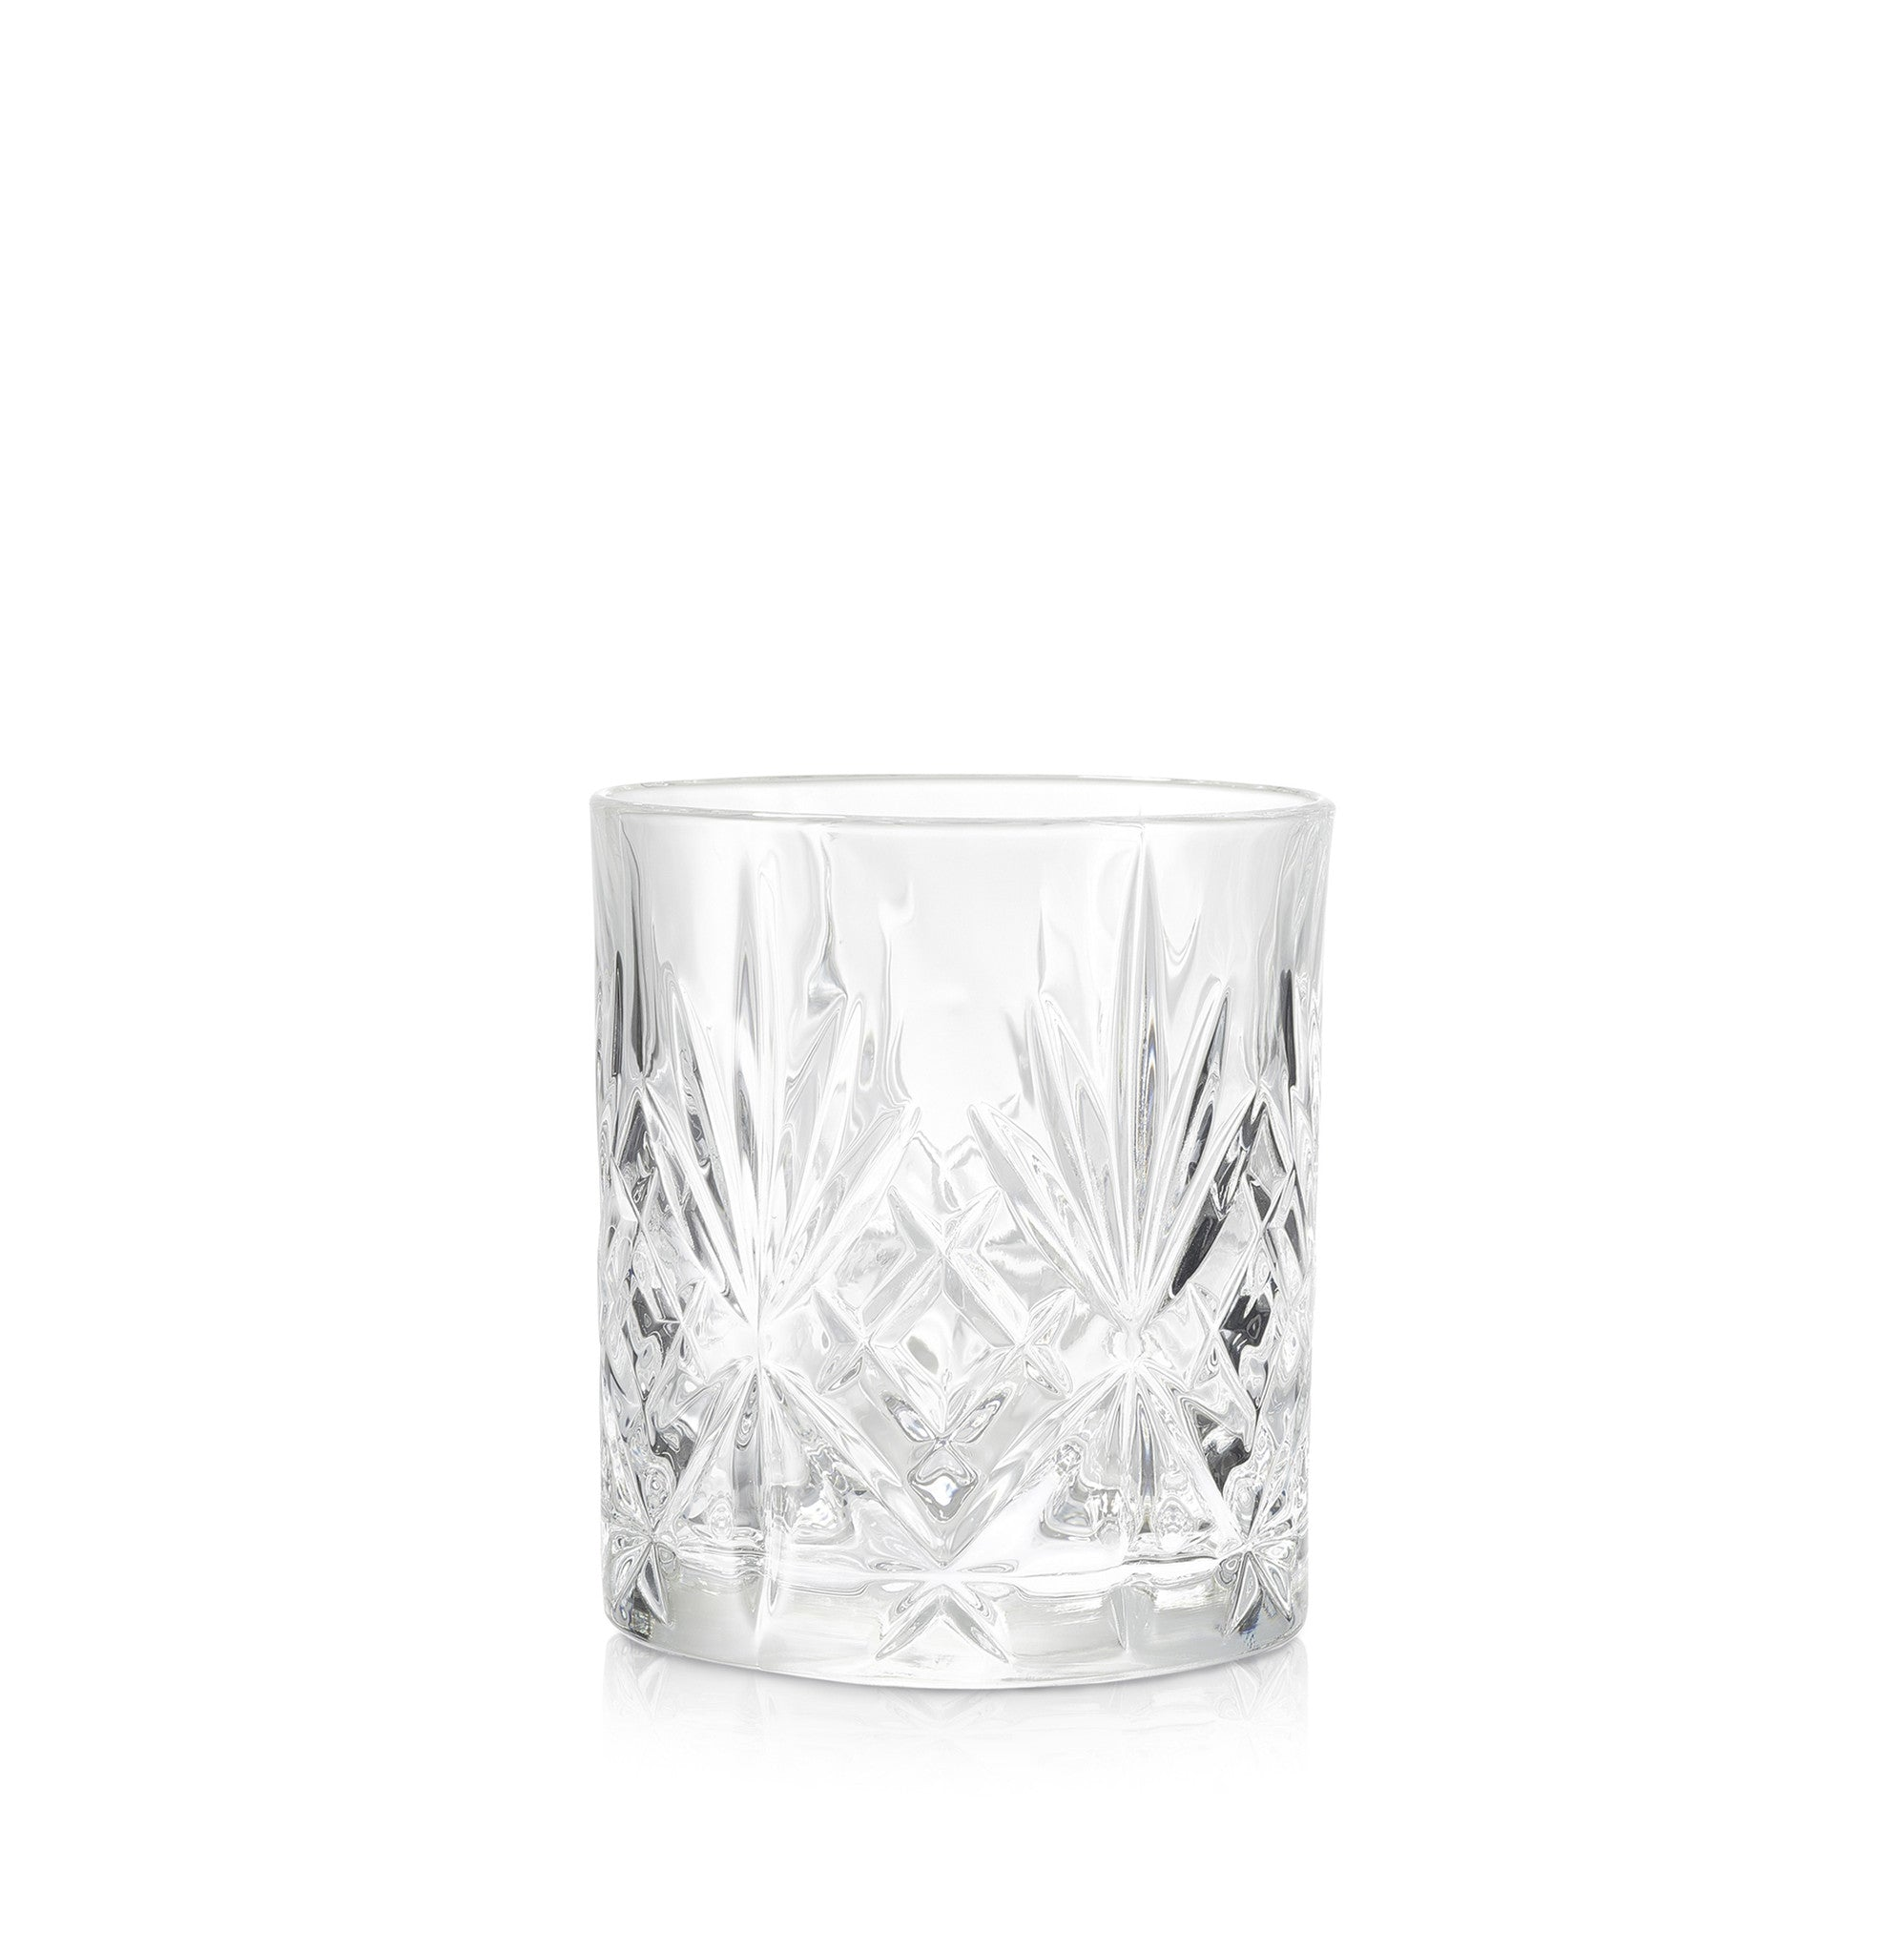 Cut glass whisky tumbler summerill bishop How can i cut glass at home